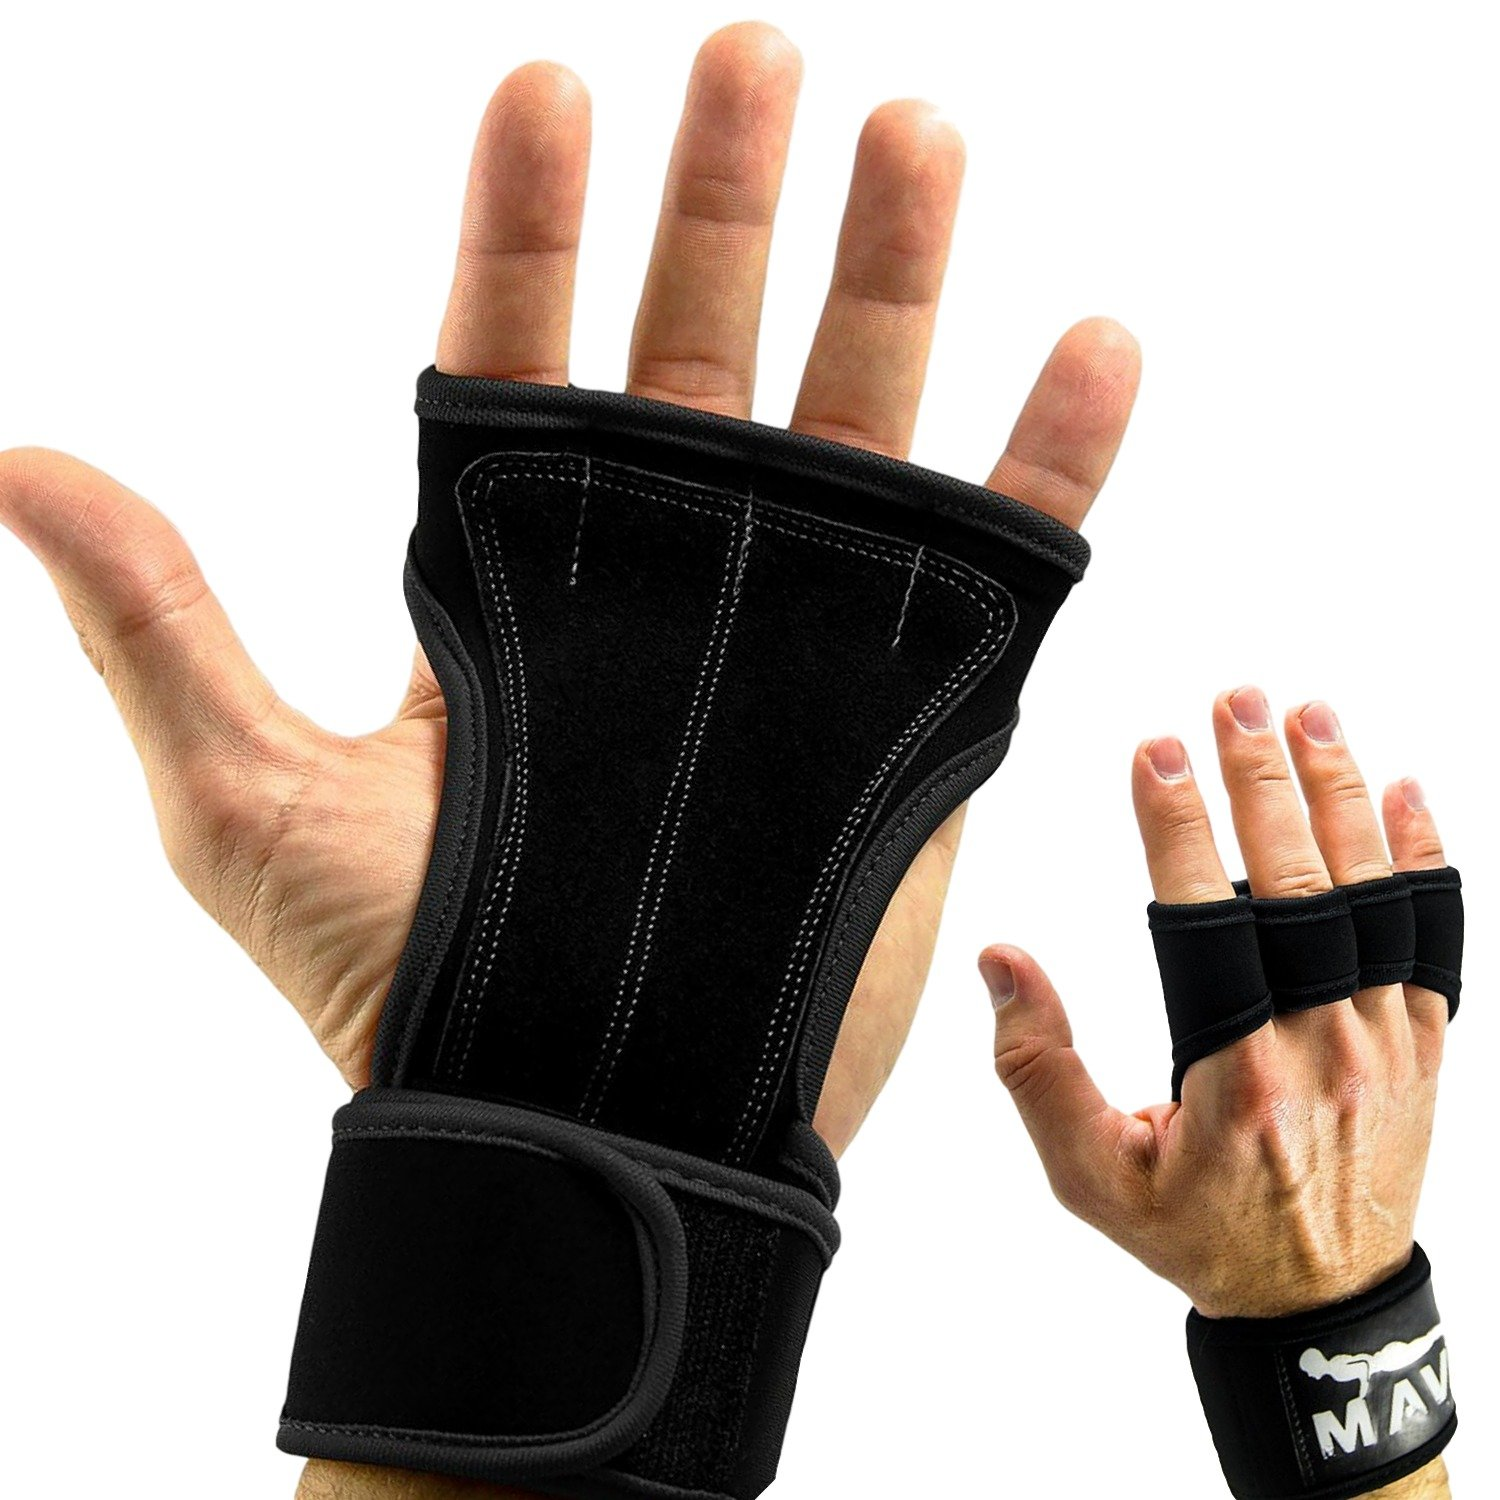 ac513f2920 Mava Sports Leather Padding Gloves Cross Training Gloves with Wrist ...